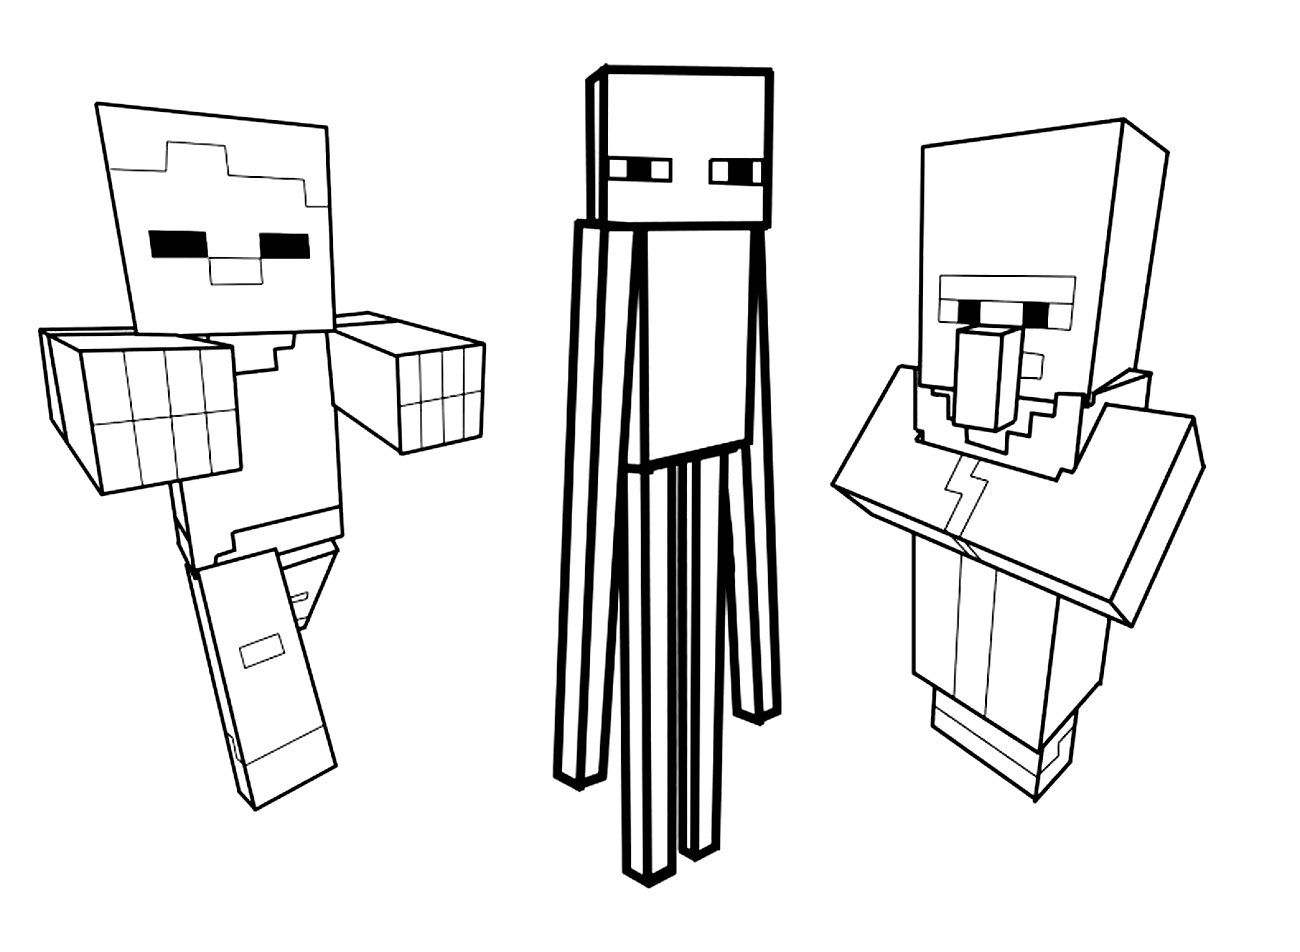 minecraft mutant enderman coloring pages minecraft ausmalbilder enderman coloring enderman minecraft mutant pages